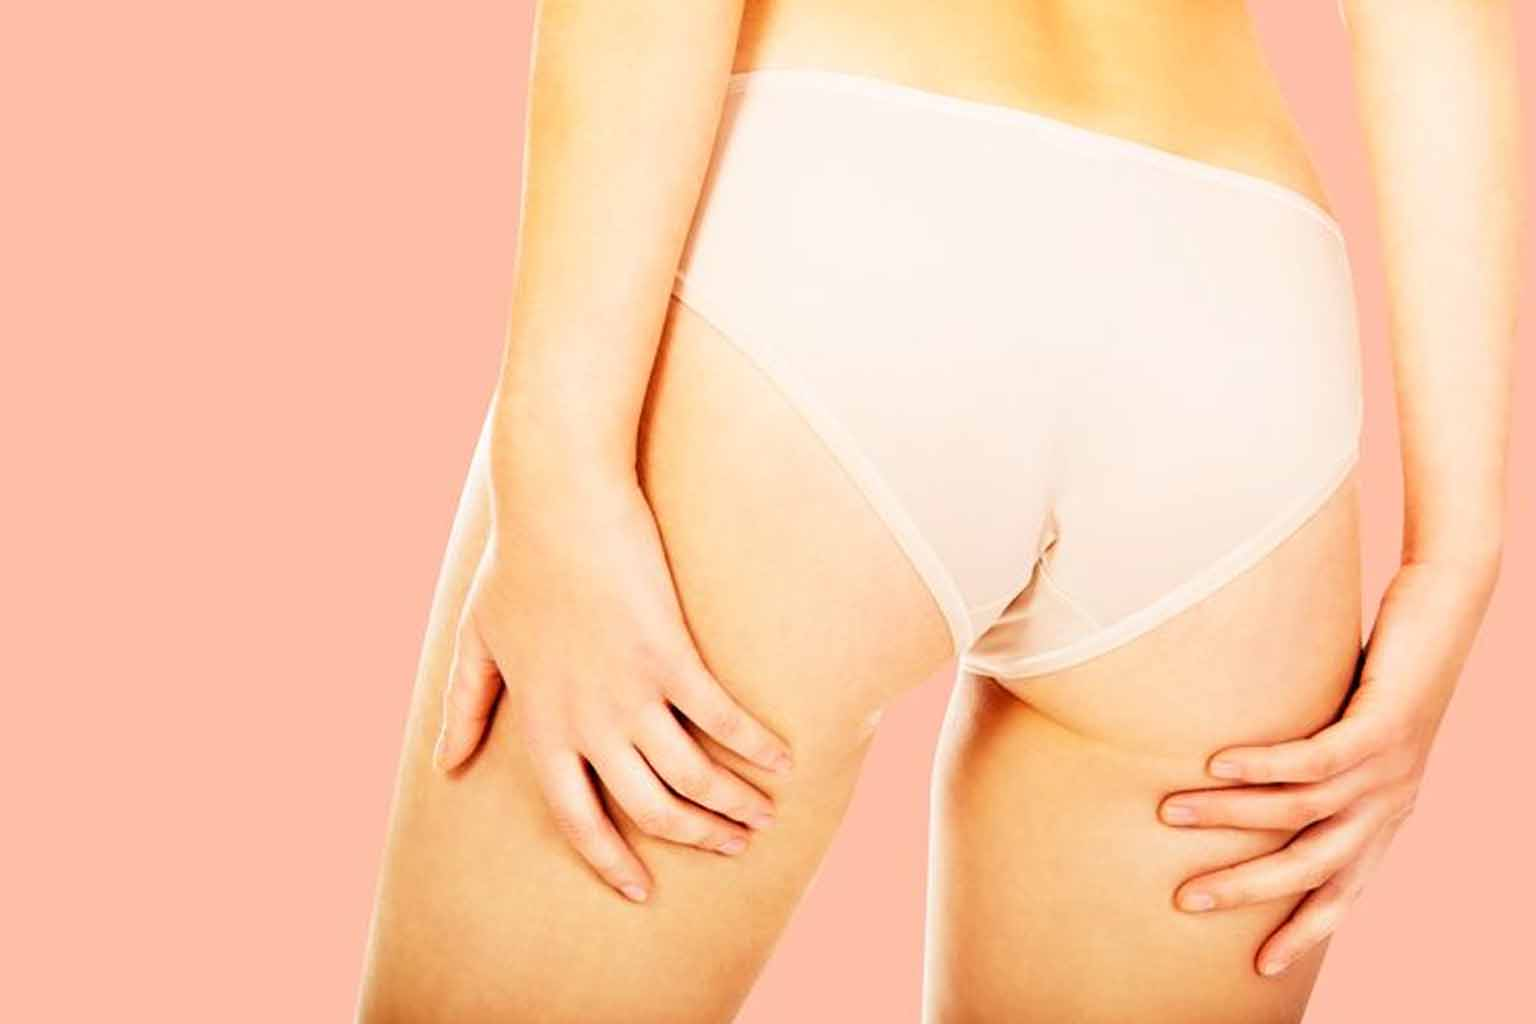 11 Amazing Ways To Treat Red & Itchy Butt At Home % - % The Voice Of Woman